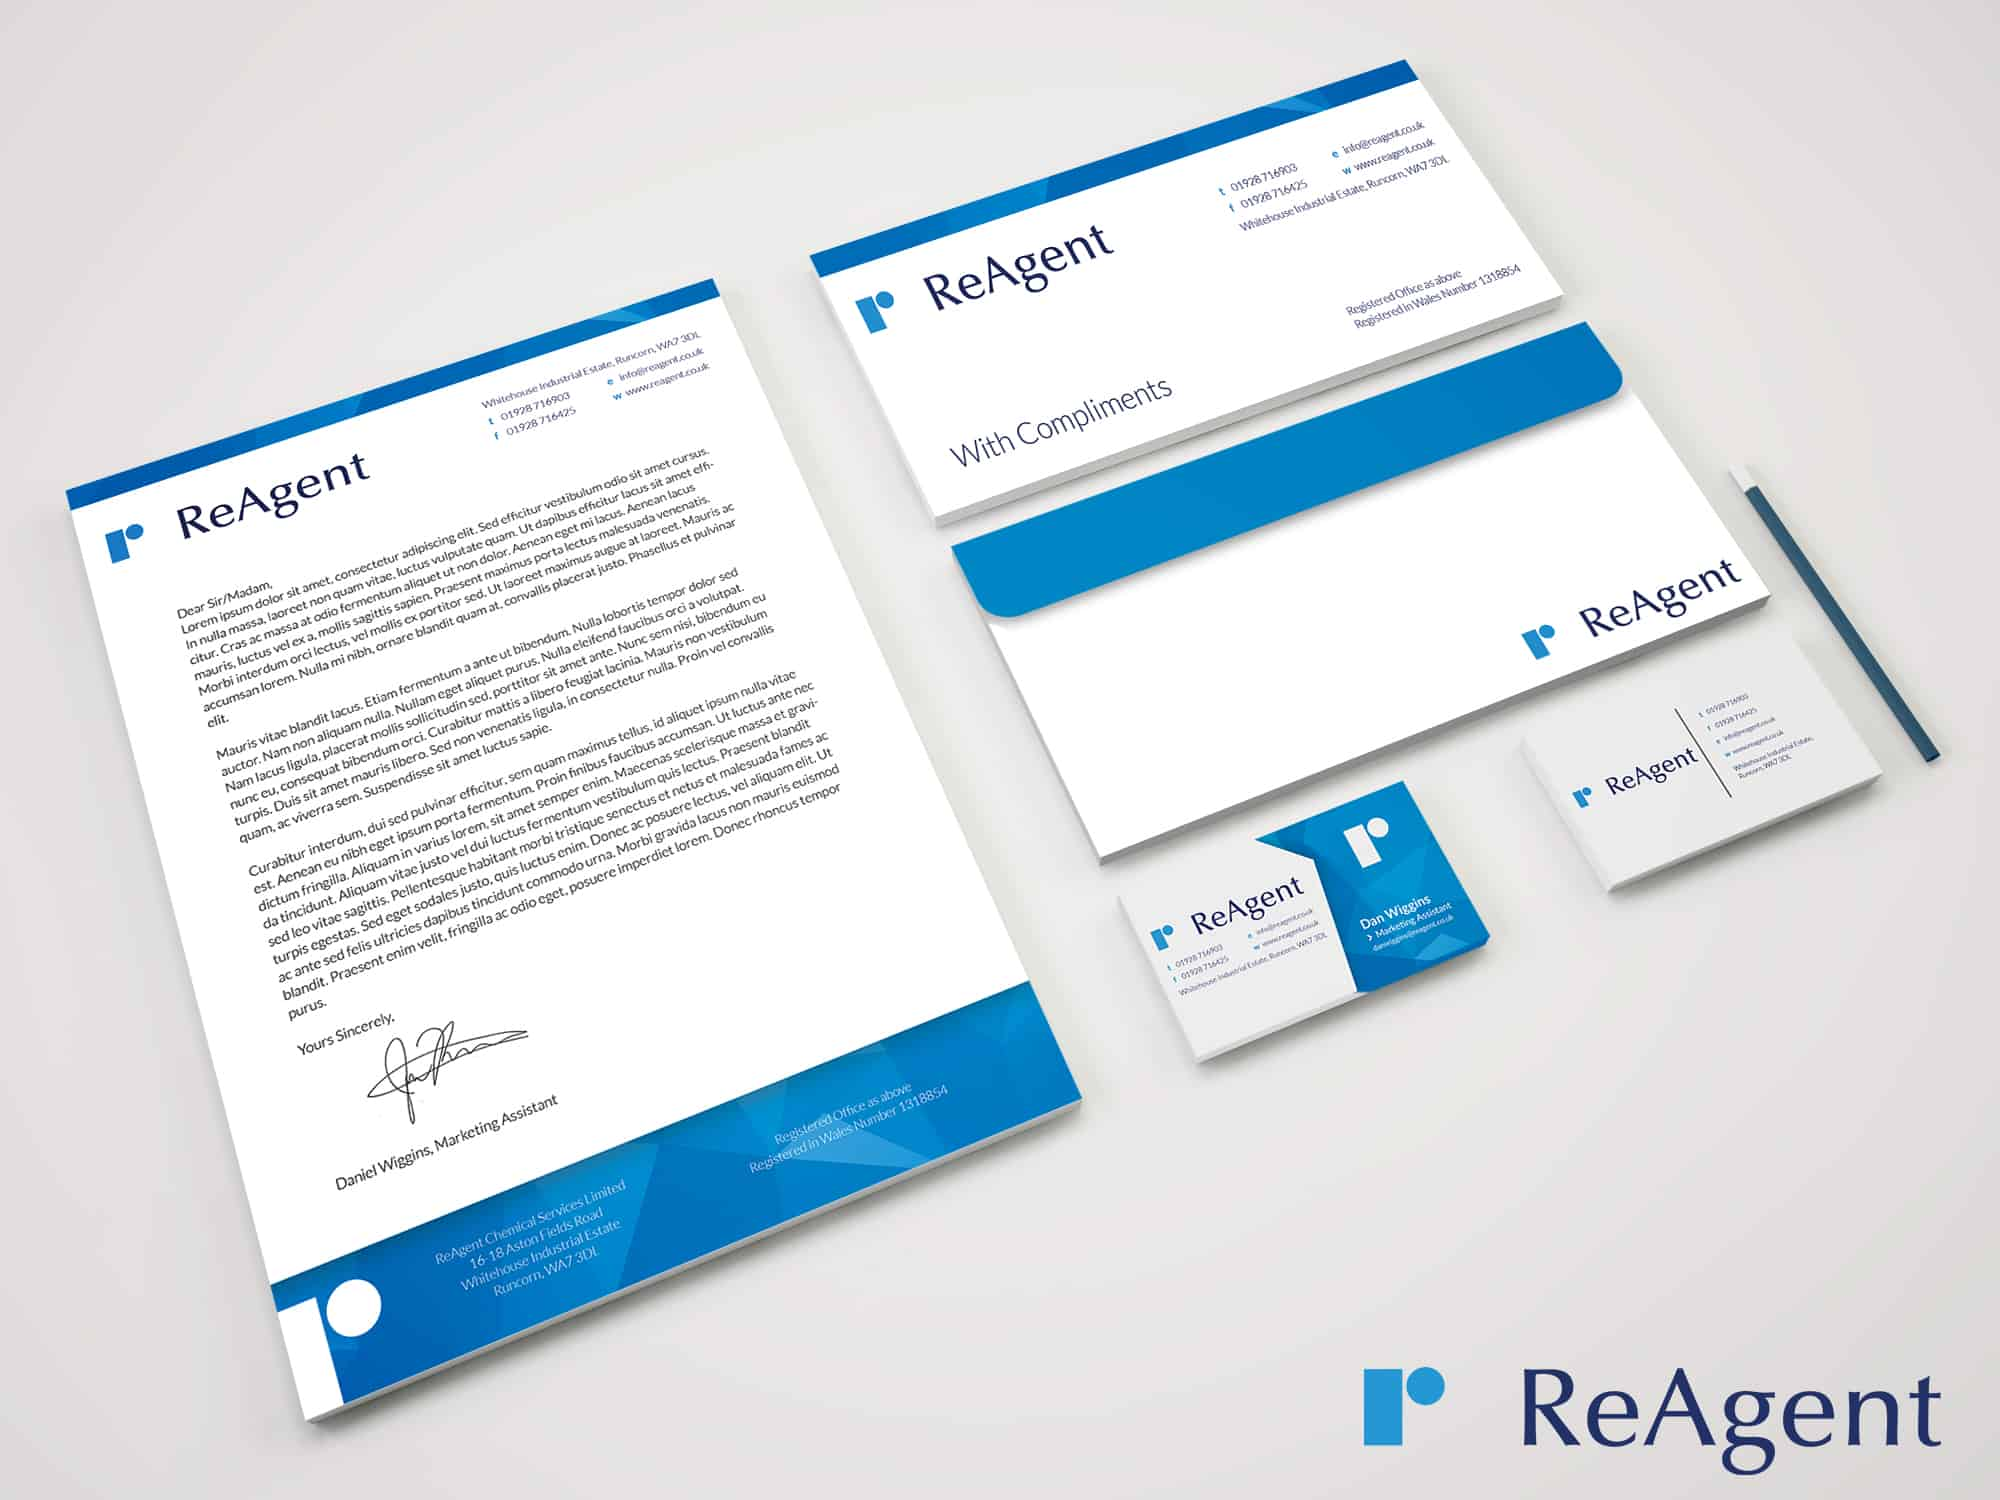 ReAgent Document Branding 2015